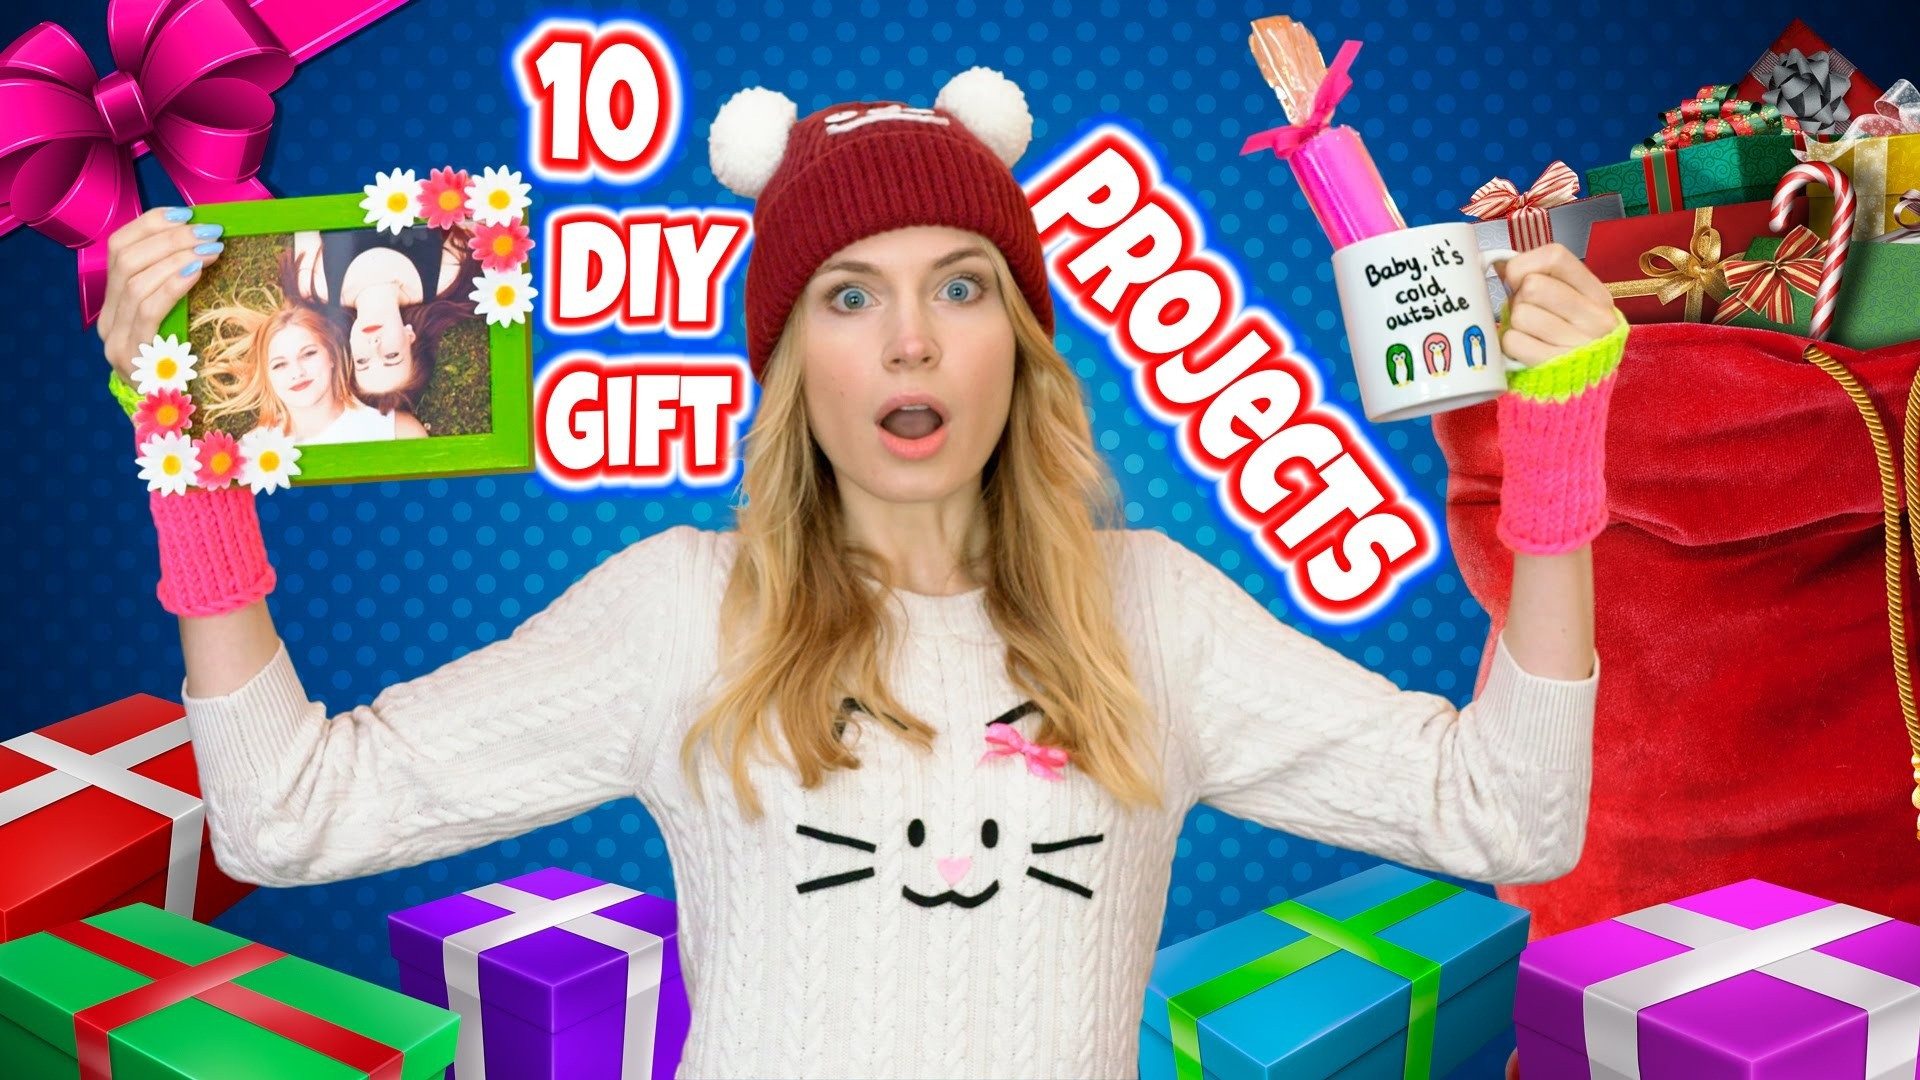 Birthday Gift Ideas For 20 Year Old Female  Christmas Gifts For 20 Year Old Female